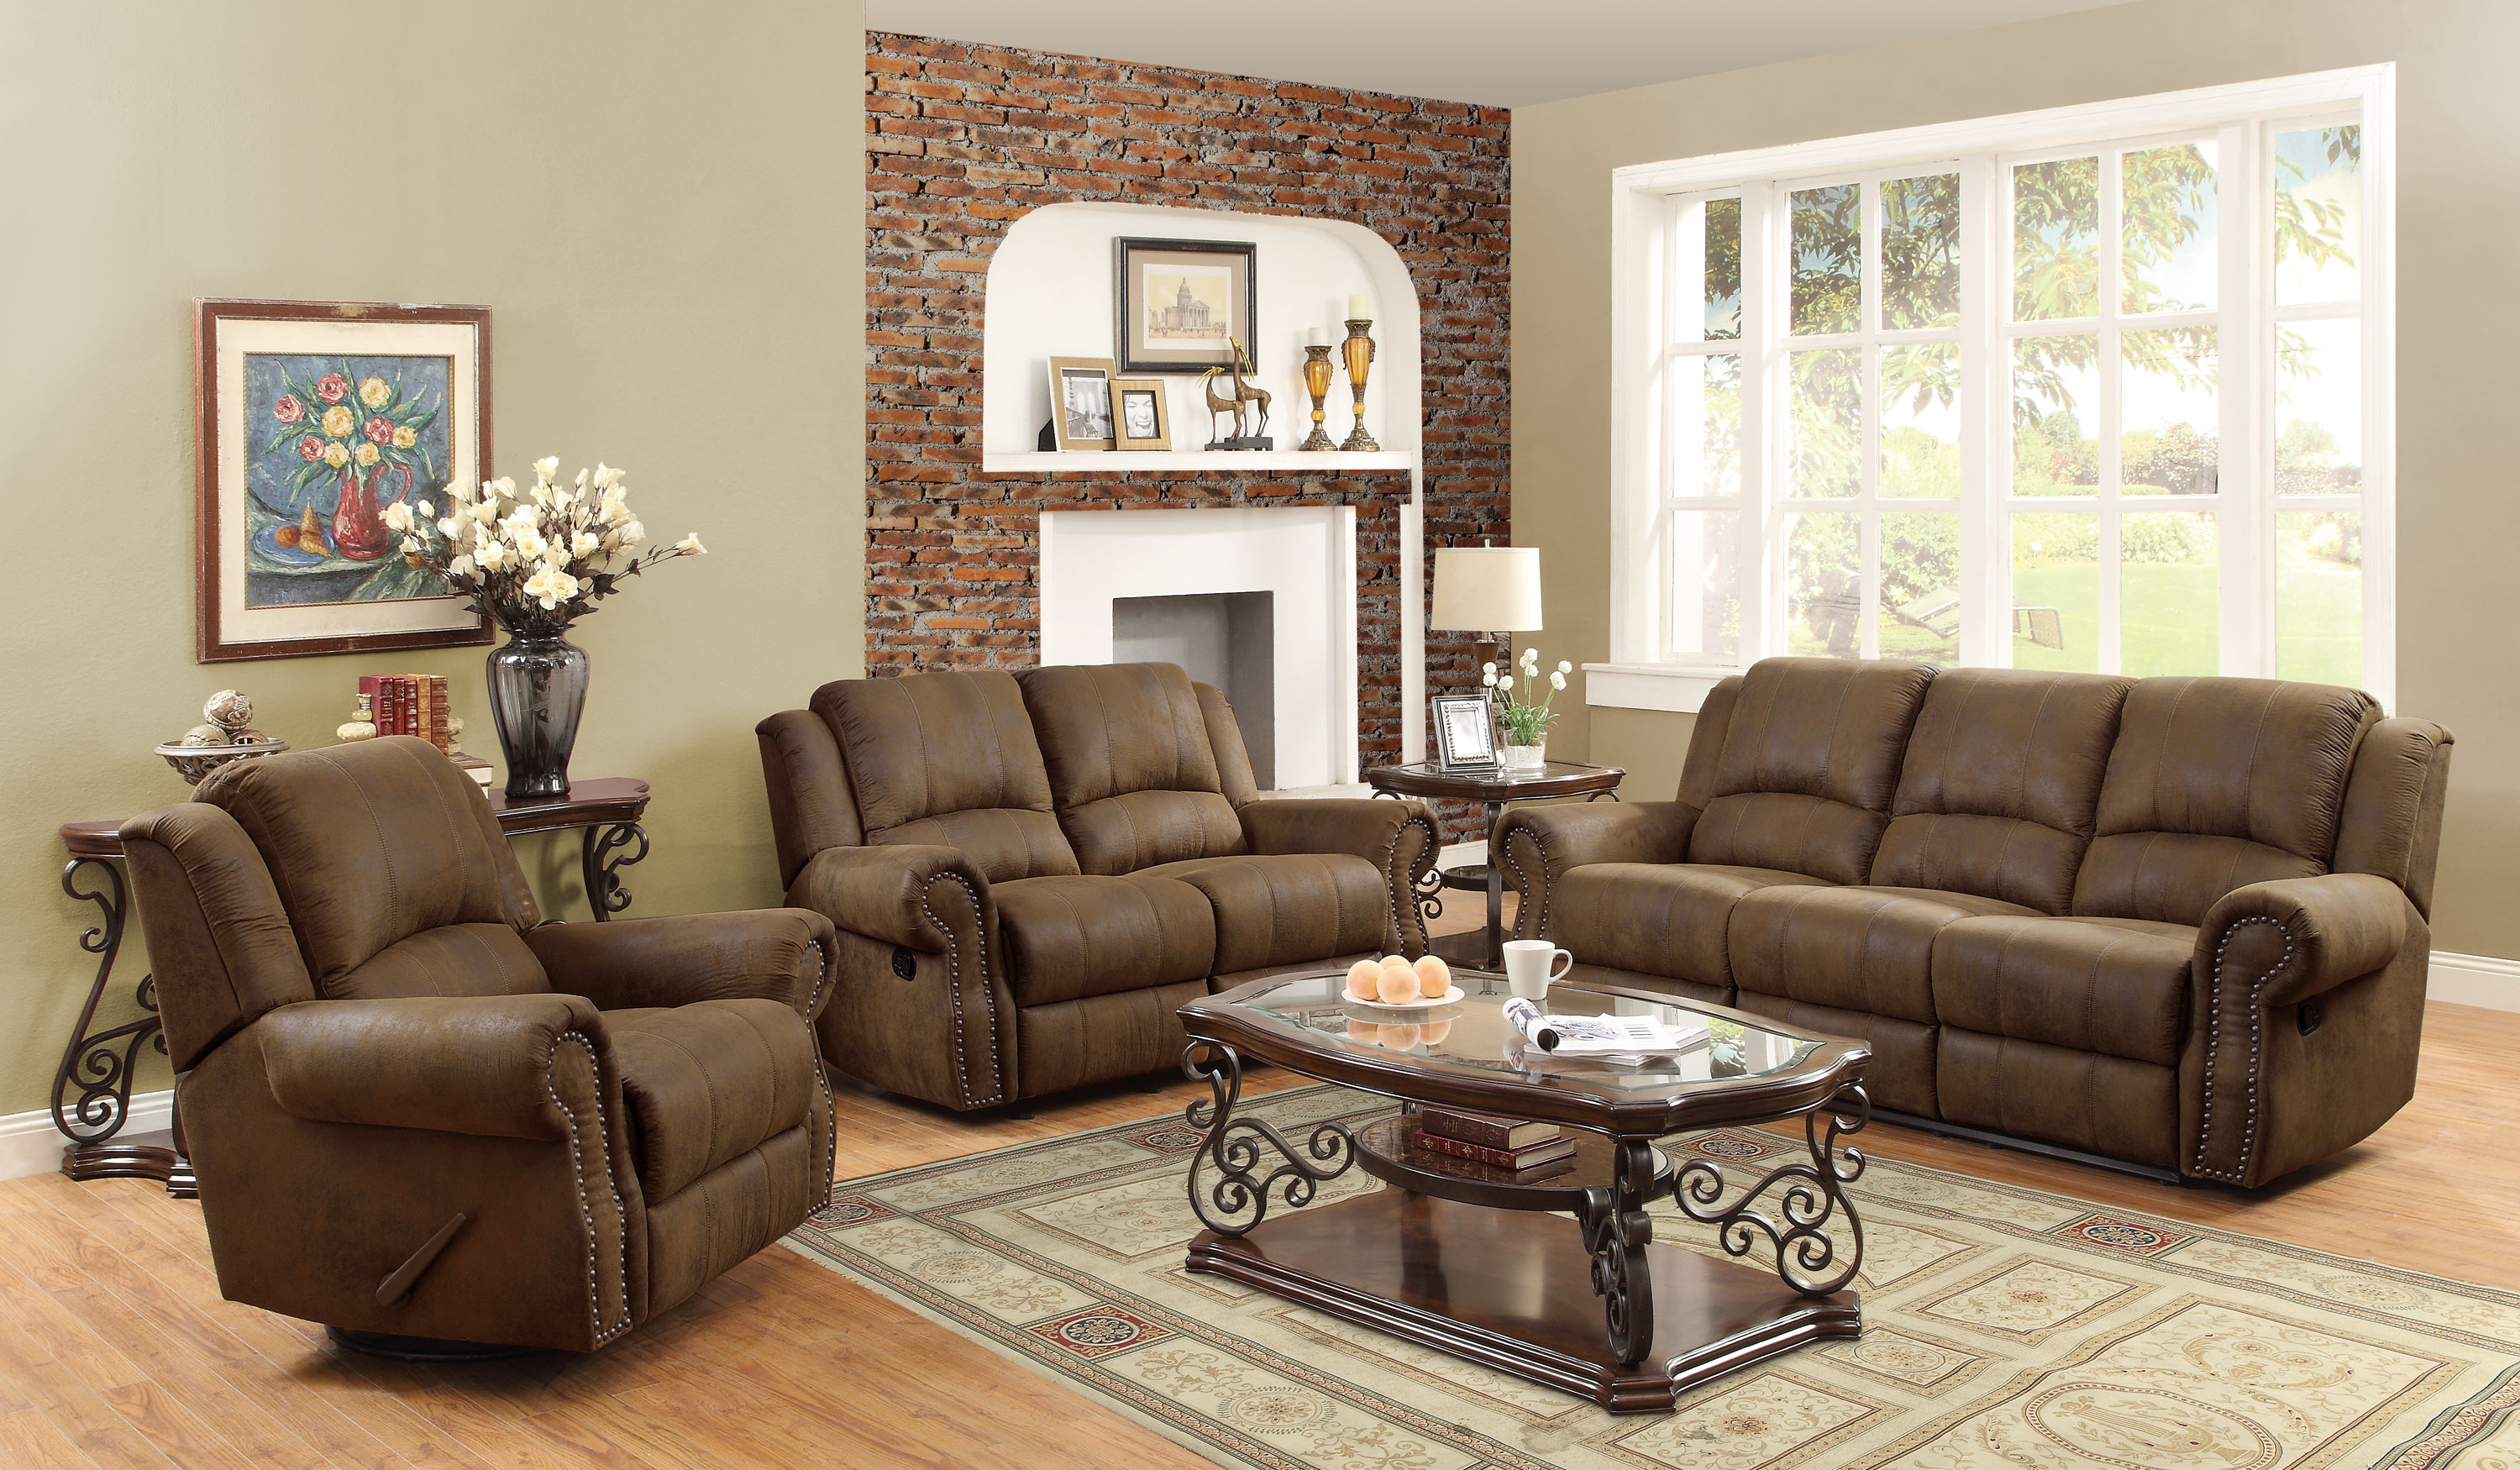 Coaster Sir Rawlinson Coated Microfiber Motion Living Room Set In pertaining to 12 Smart Ideas How to Improve Microfiber Living Room Sets